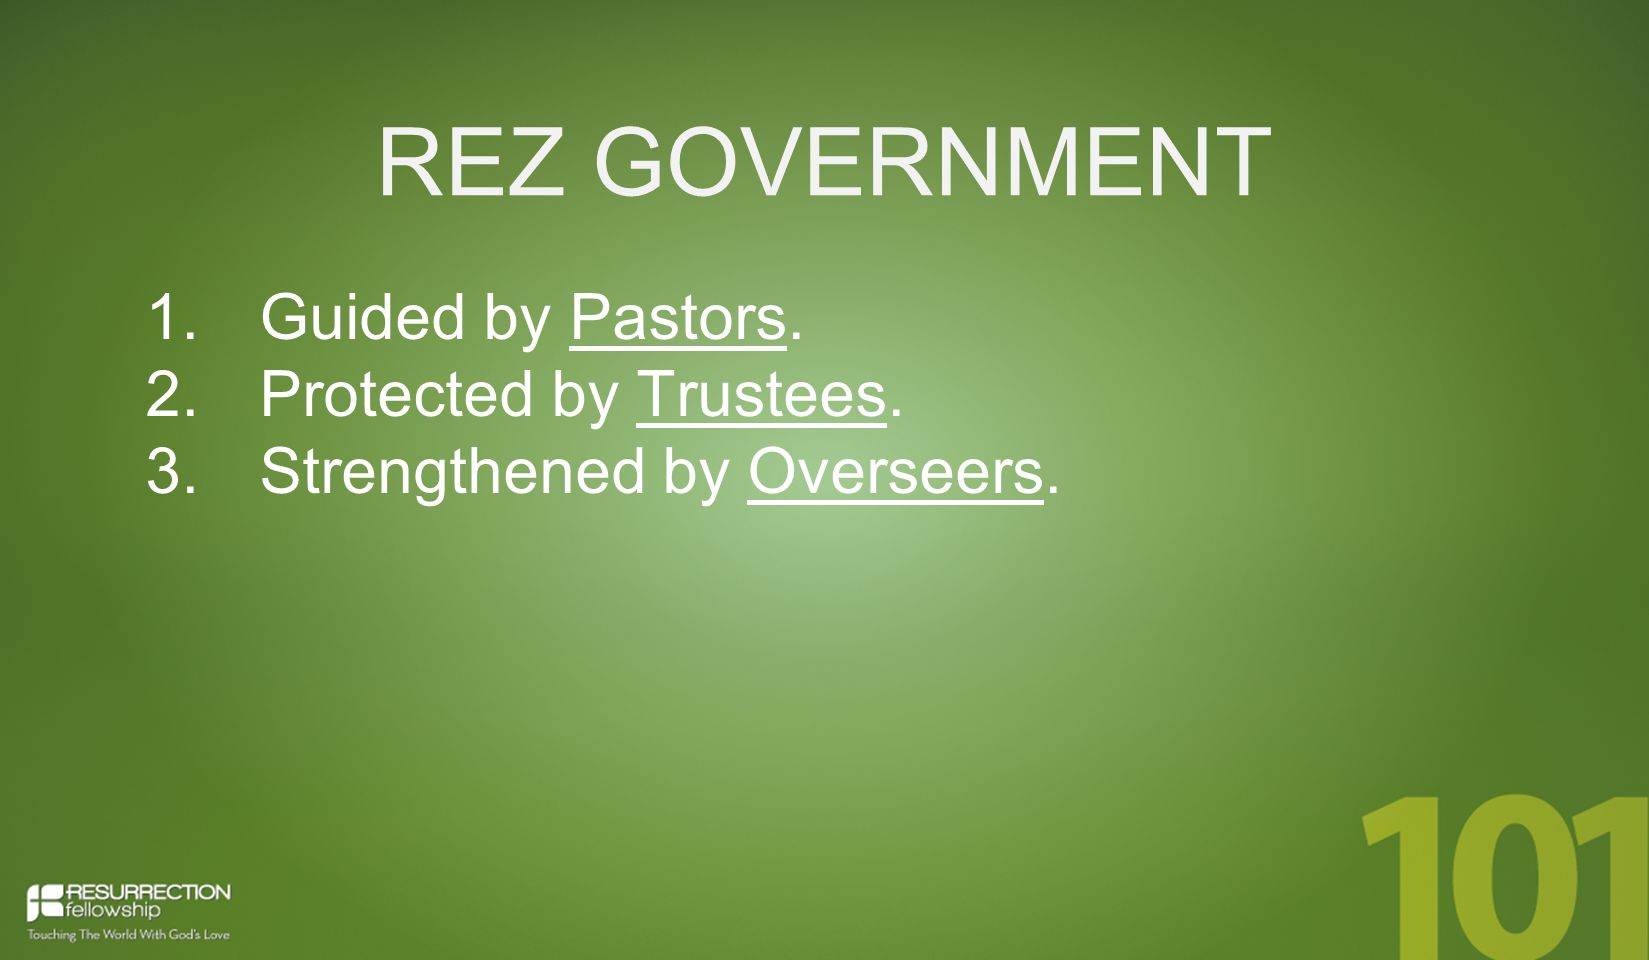 REZ GOVERNMENT 1. Guided by Pastors. 2. Protected by Trustees. 3. Strengthened by Overseers.